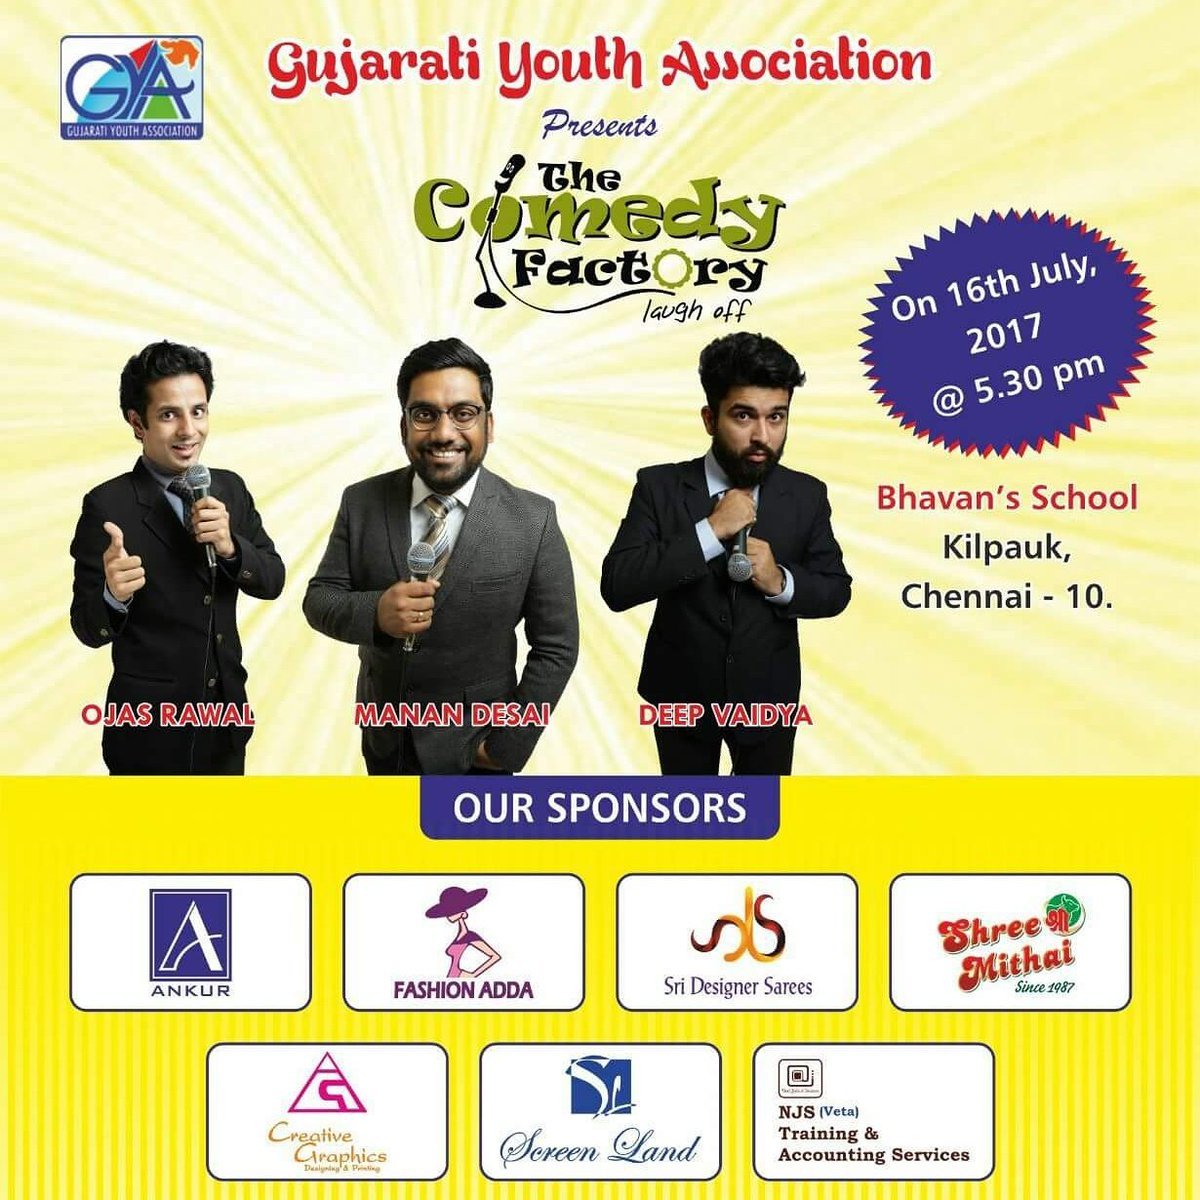 In #CHENNAI tonite wit @mananspeaks & @nautankideep frm @ComedyFactoryIn for #Gujarati #Youth Association show 😎 #standupcomedy #improv #tcf https://t.co/qEh3ooTPZY